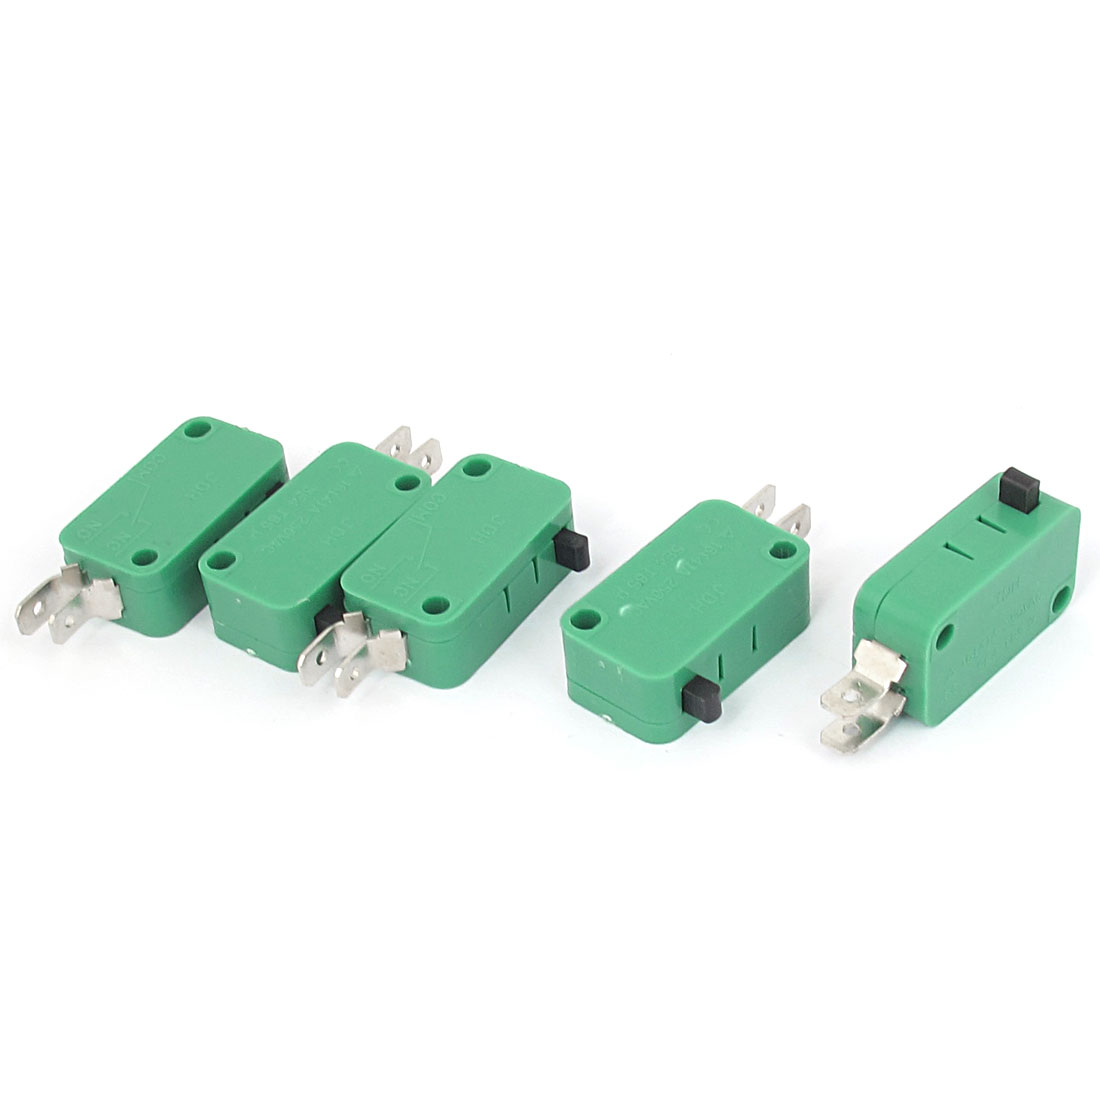 AC 250V 16(4)A SPST 2 Terminals Momentary Push Button Bending Pins Micro Limit Switch Green 5pcs